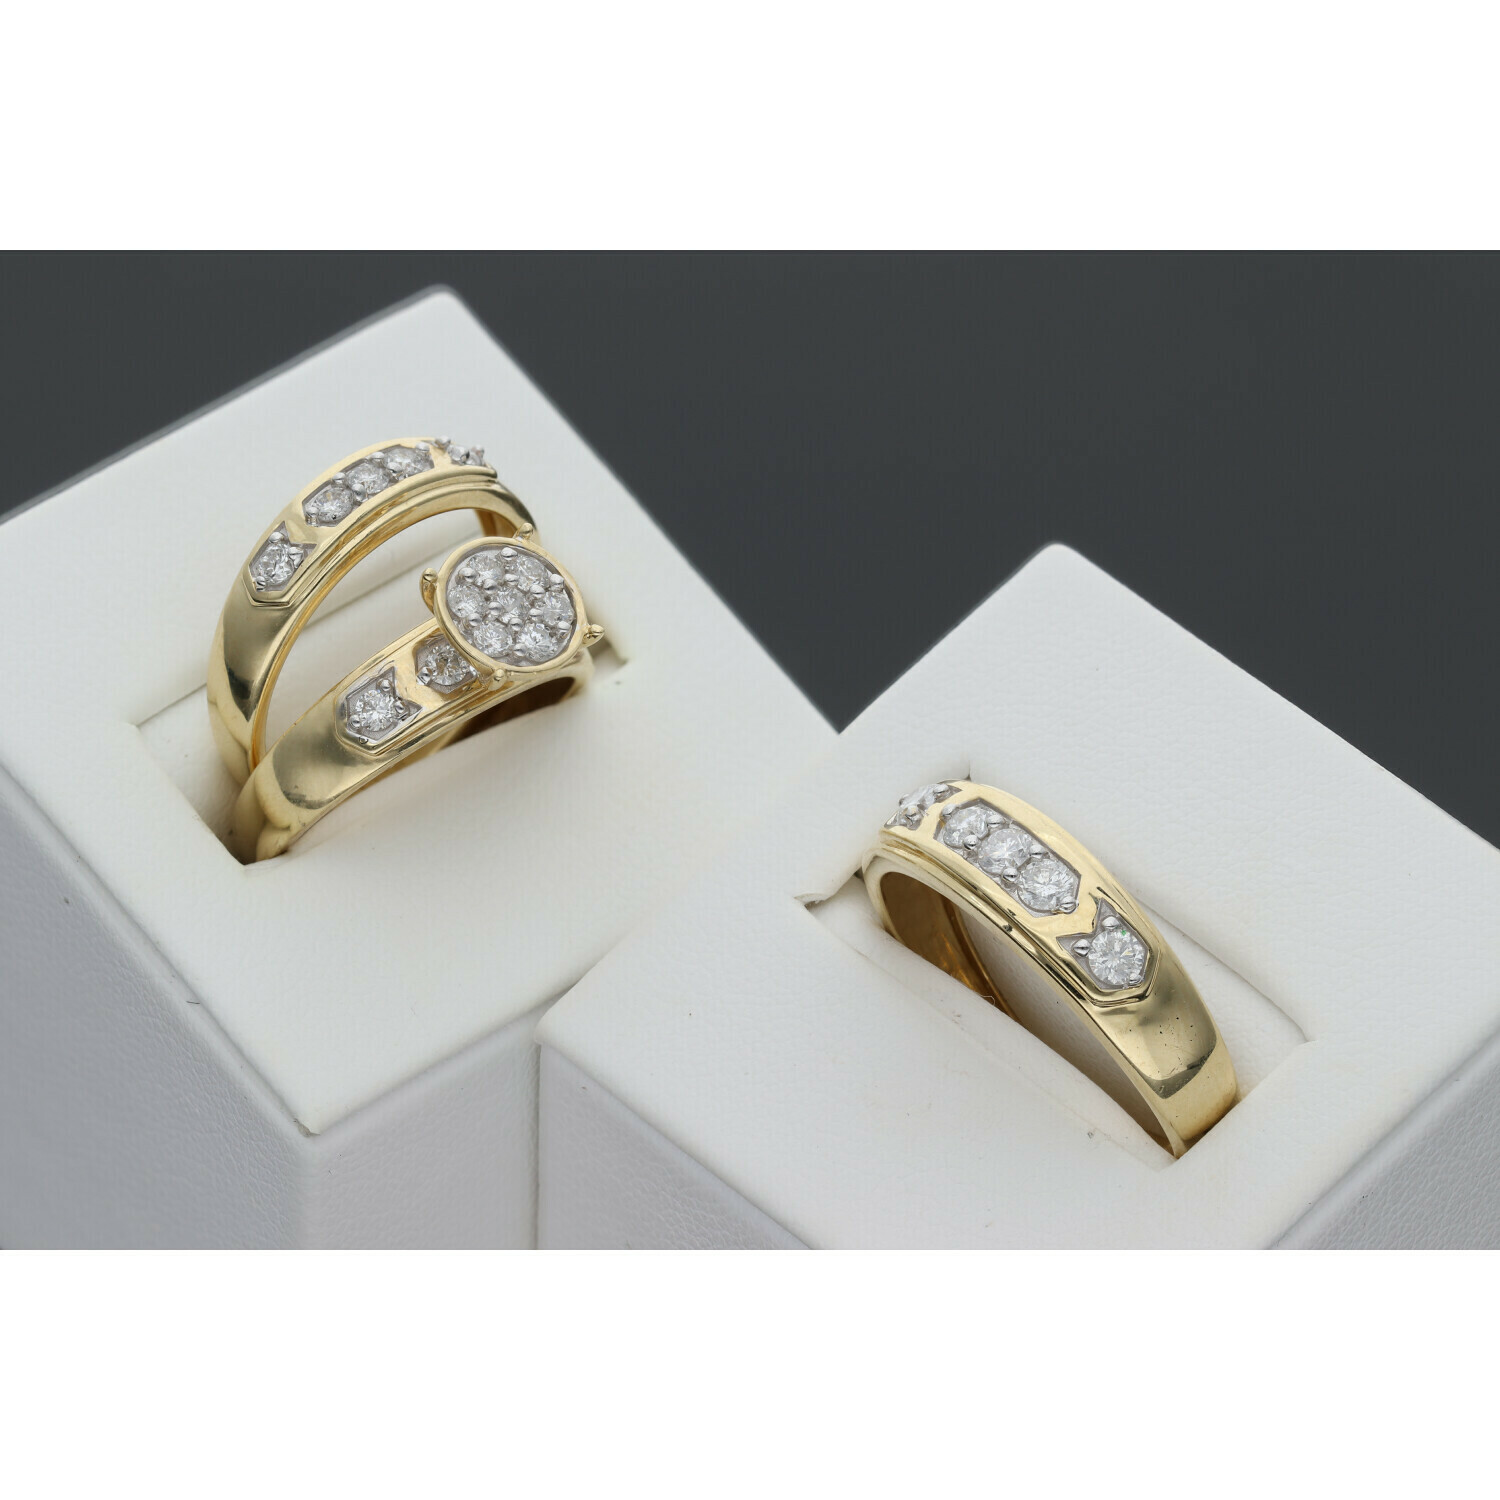 14 karat Gold & Diamond Trio Wedding Rings